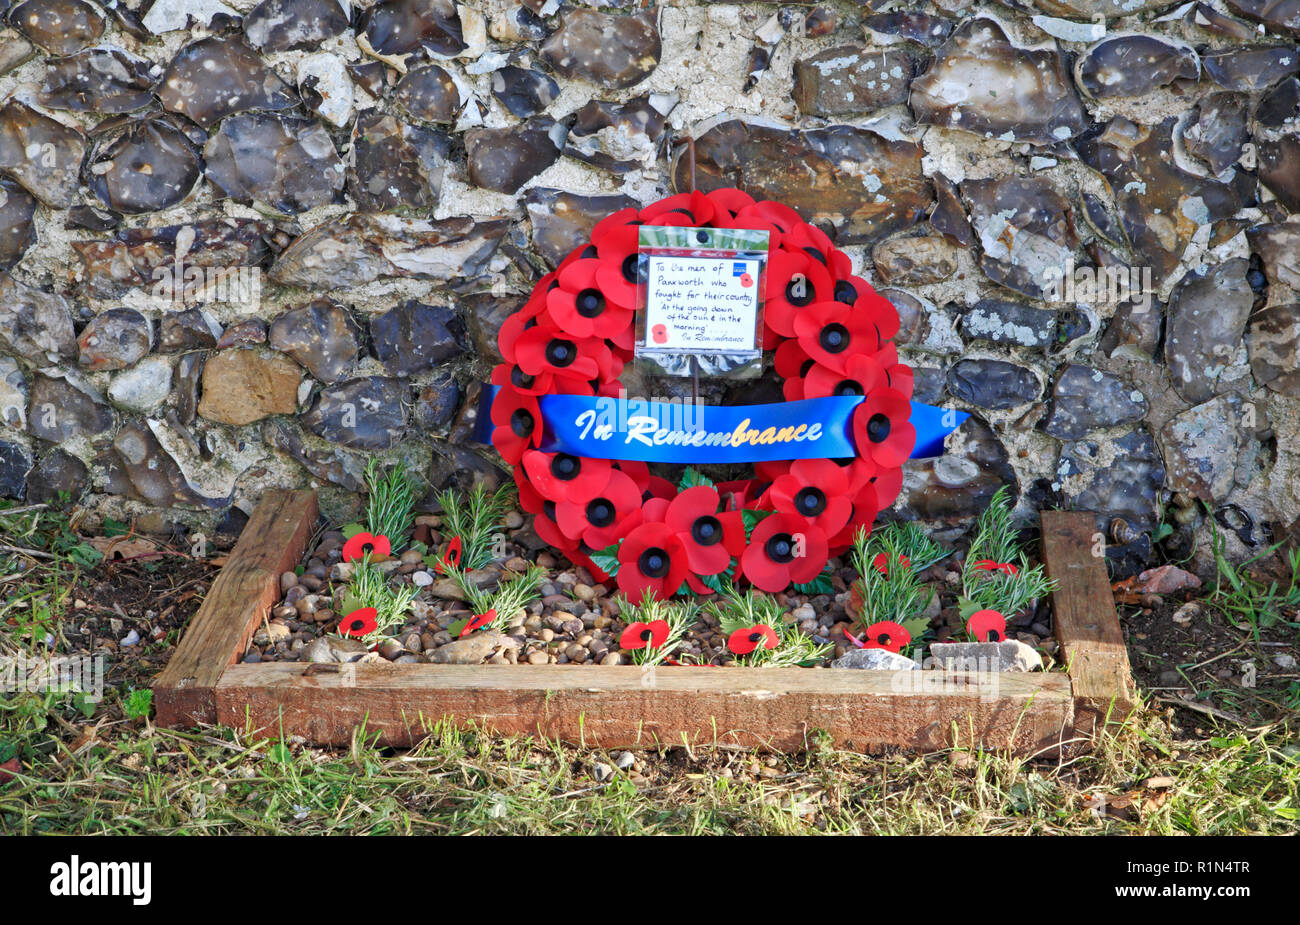 A poppy wreath and poppies to the memory of the fallen men of Panxworth, Norfolk, England, United Kingdom, Europe, on the centenary of WW1 ceasefire. - Stock Image